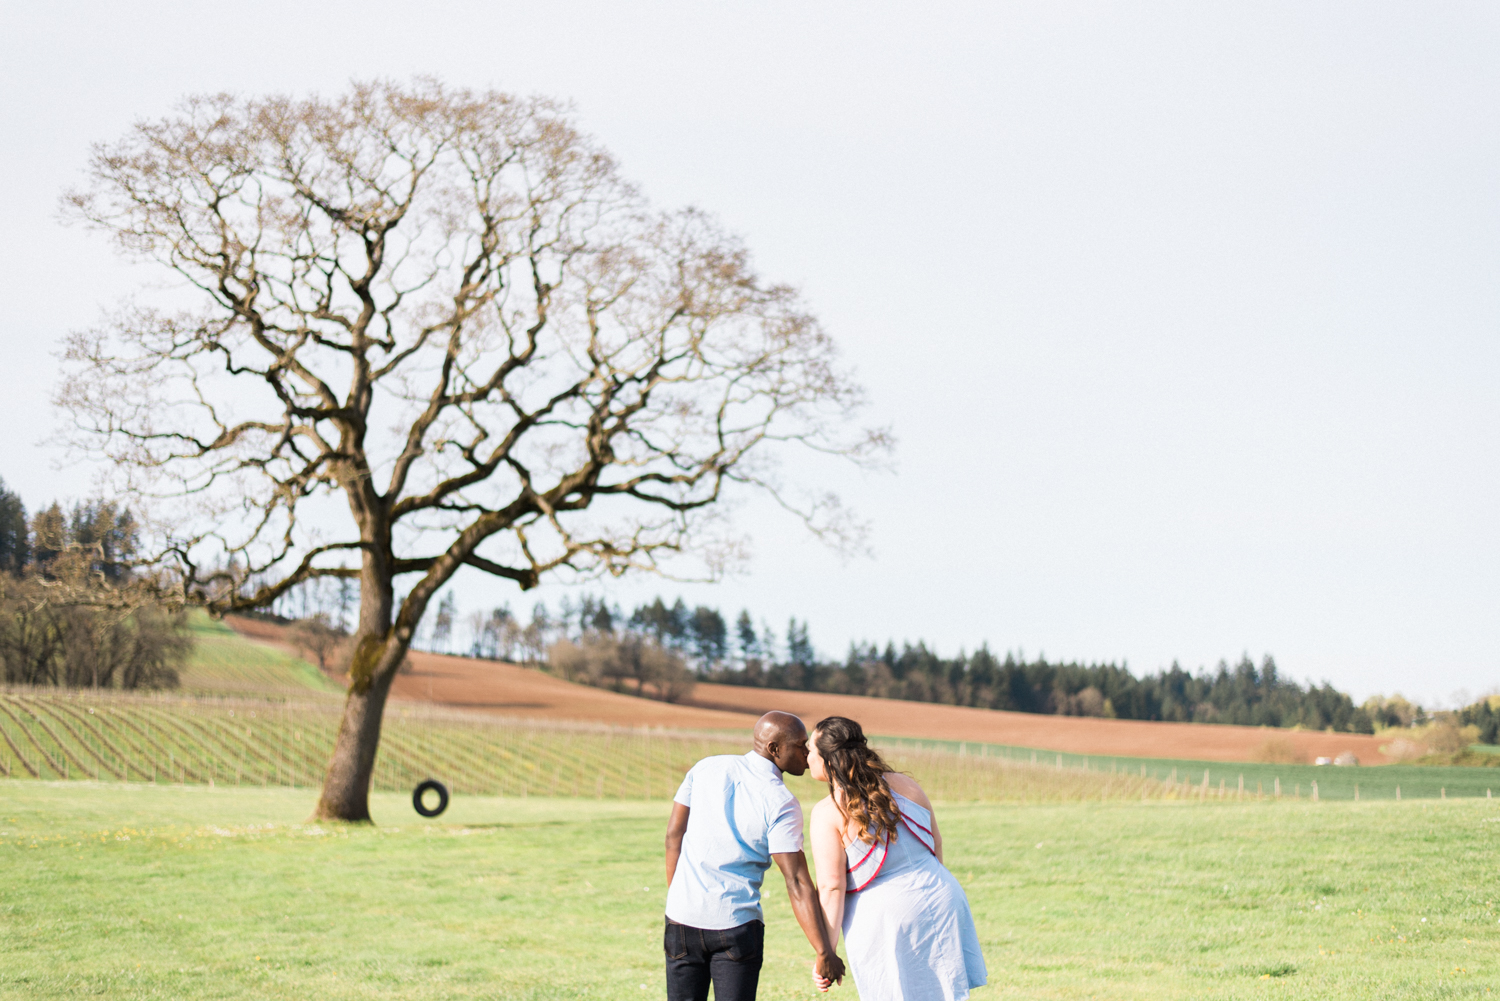 stoller-vineyards-engagement-photos-portland-oregon-shelley-marie-photo-107.jpg